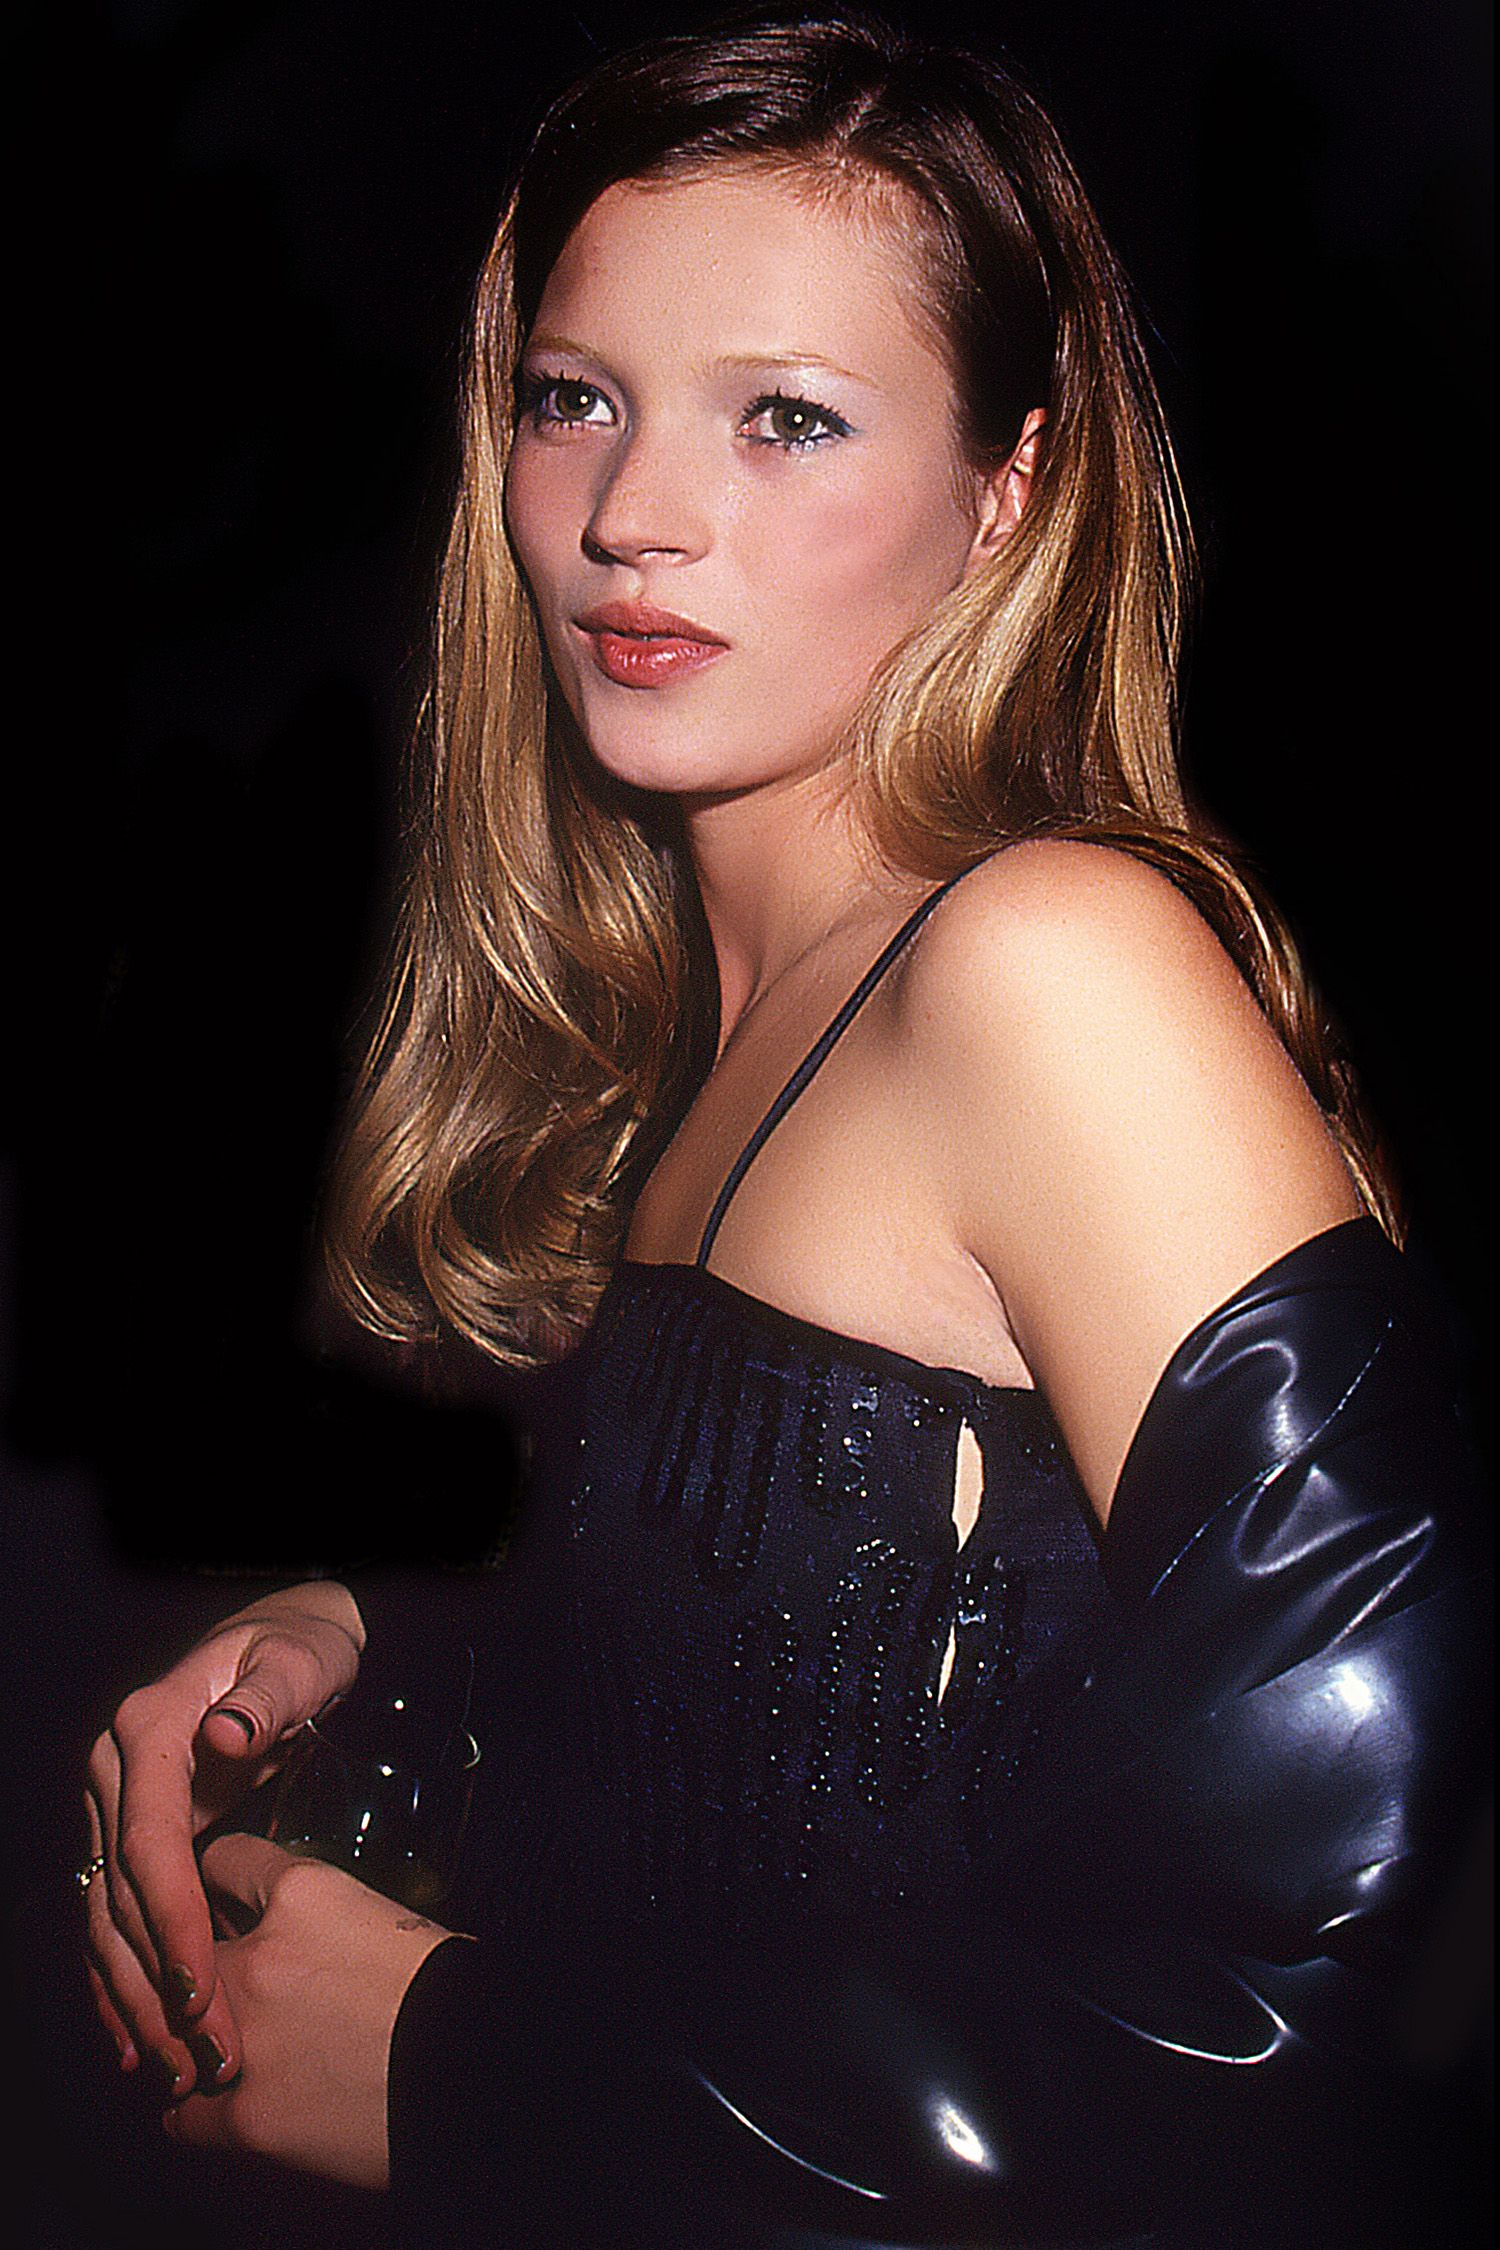 Kate Moss' Beauty Evolution Through the Years